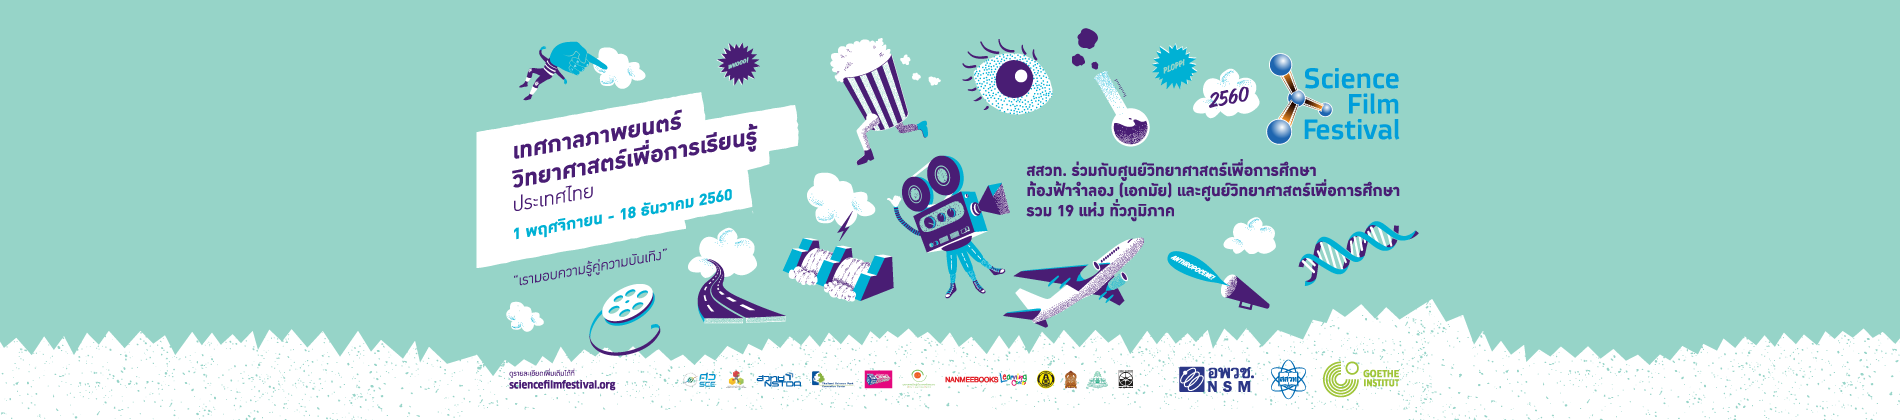 Science Film Festival 2017